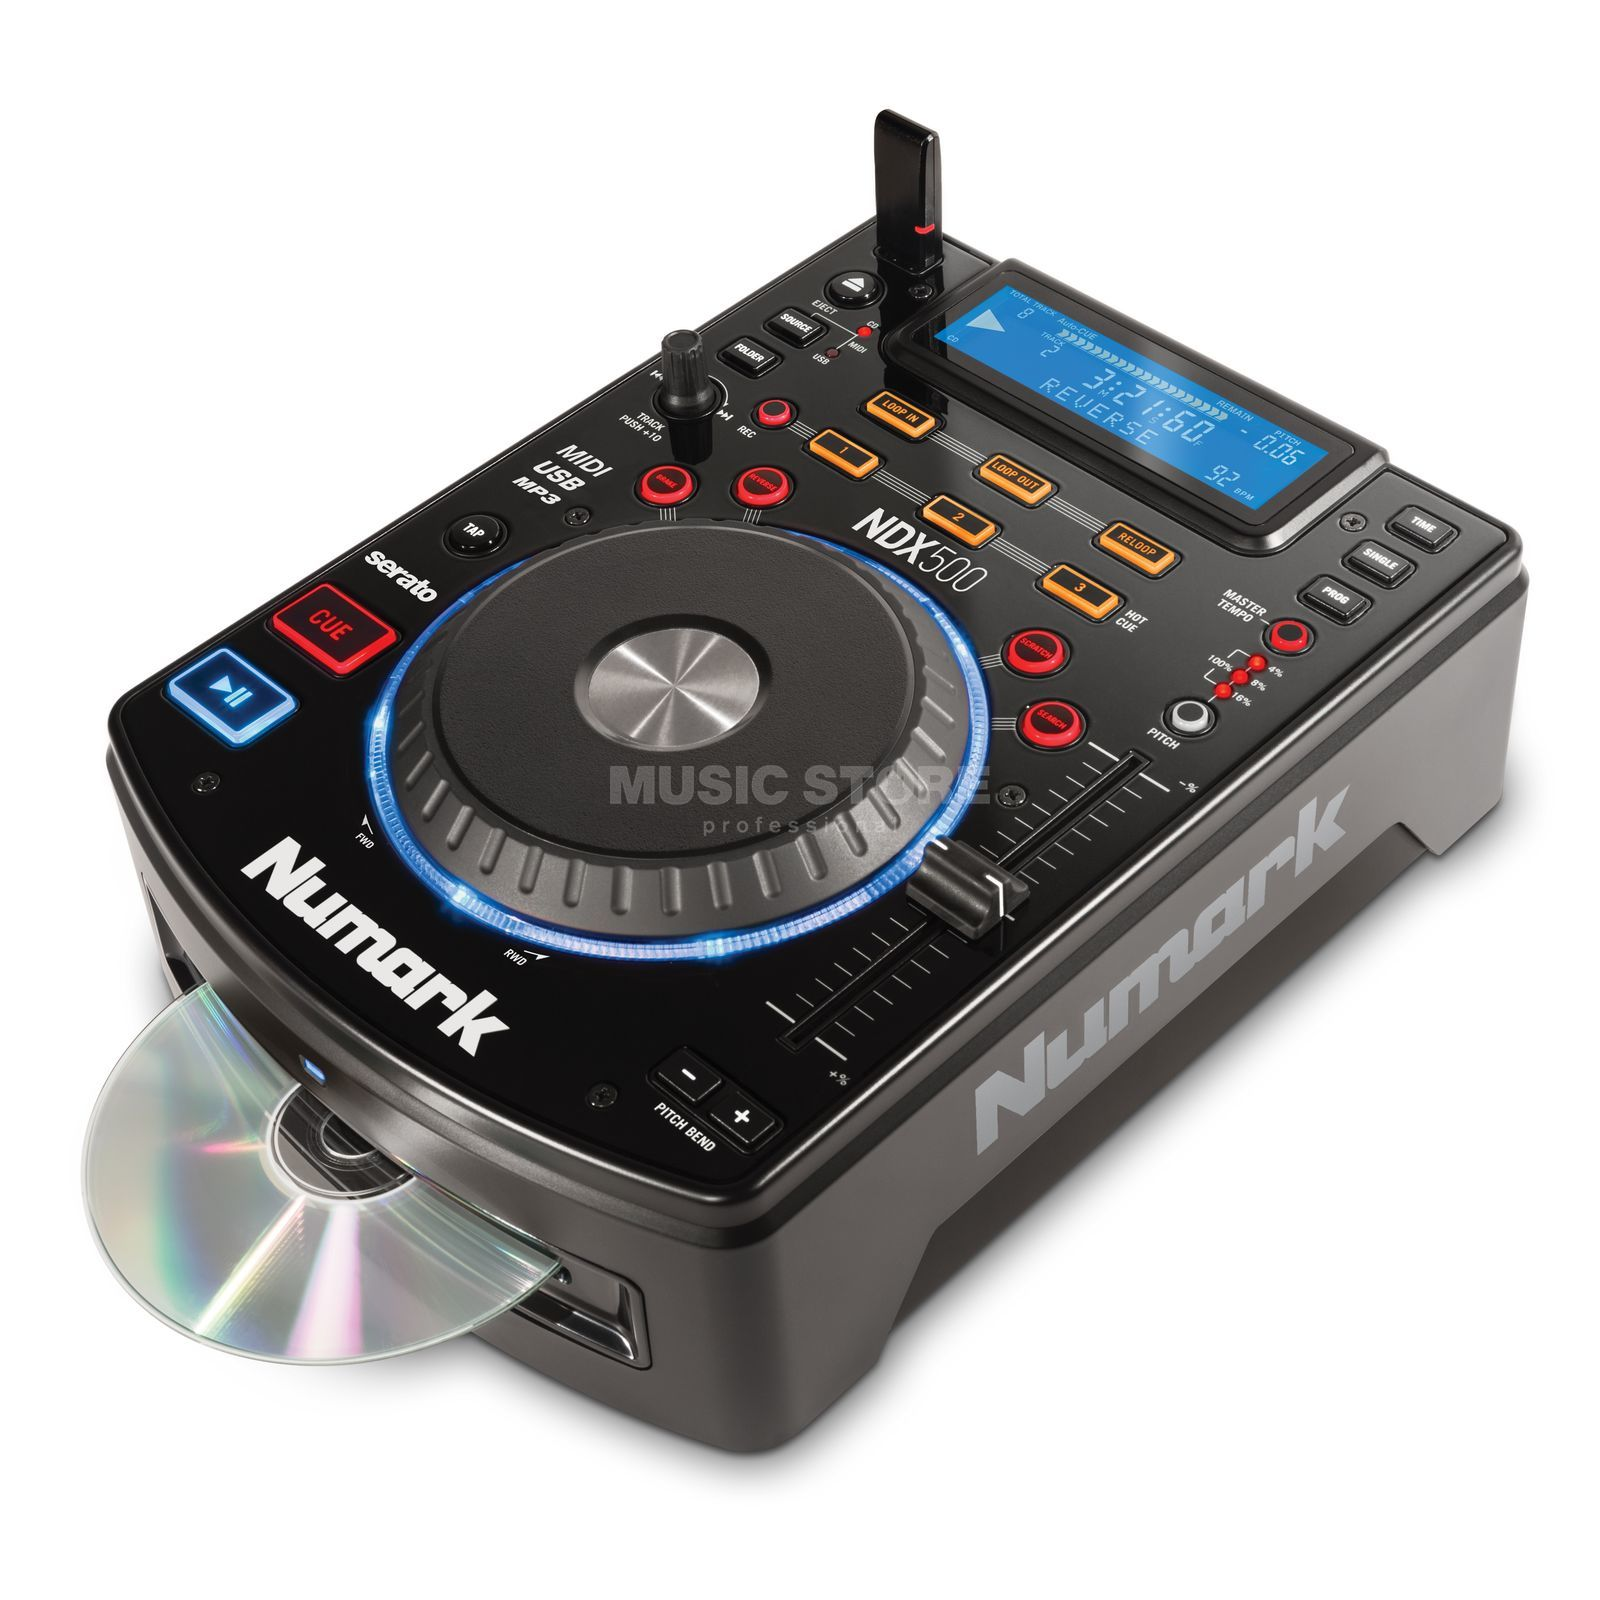 Numark NDX500 USB/CD Media Player/Controller Zdjęcie produktu